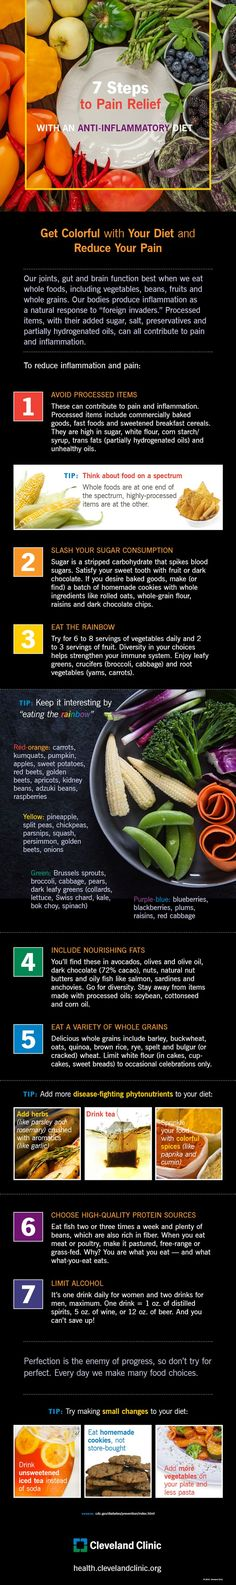 7 Steps to Pain Relief With an Anti-inflammatory Diet